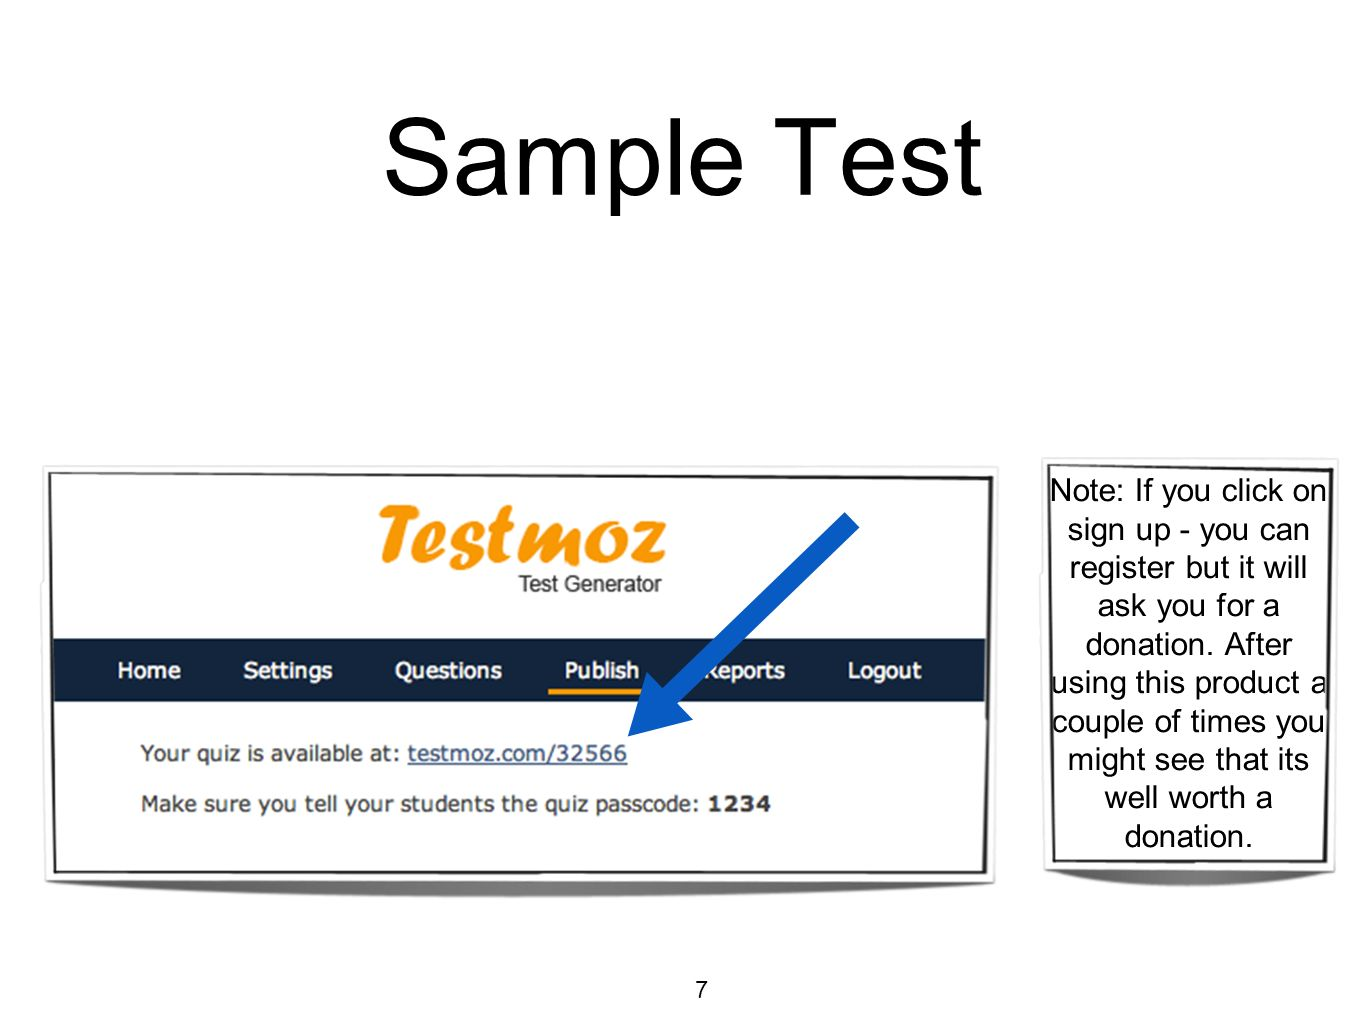 Sample Test Note: If you click on sign up - you can register but it will ask you for a donation. After using this product a couple of times you might